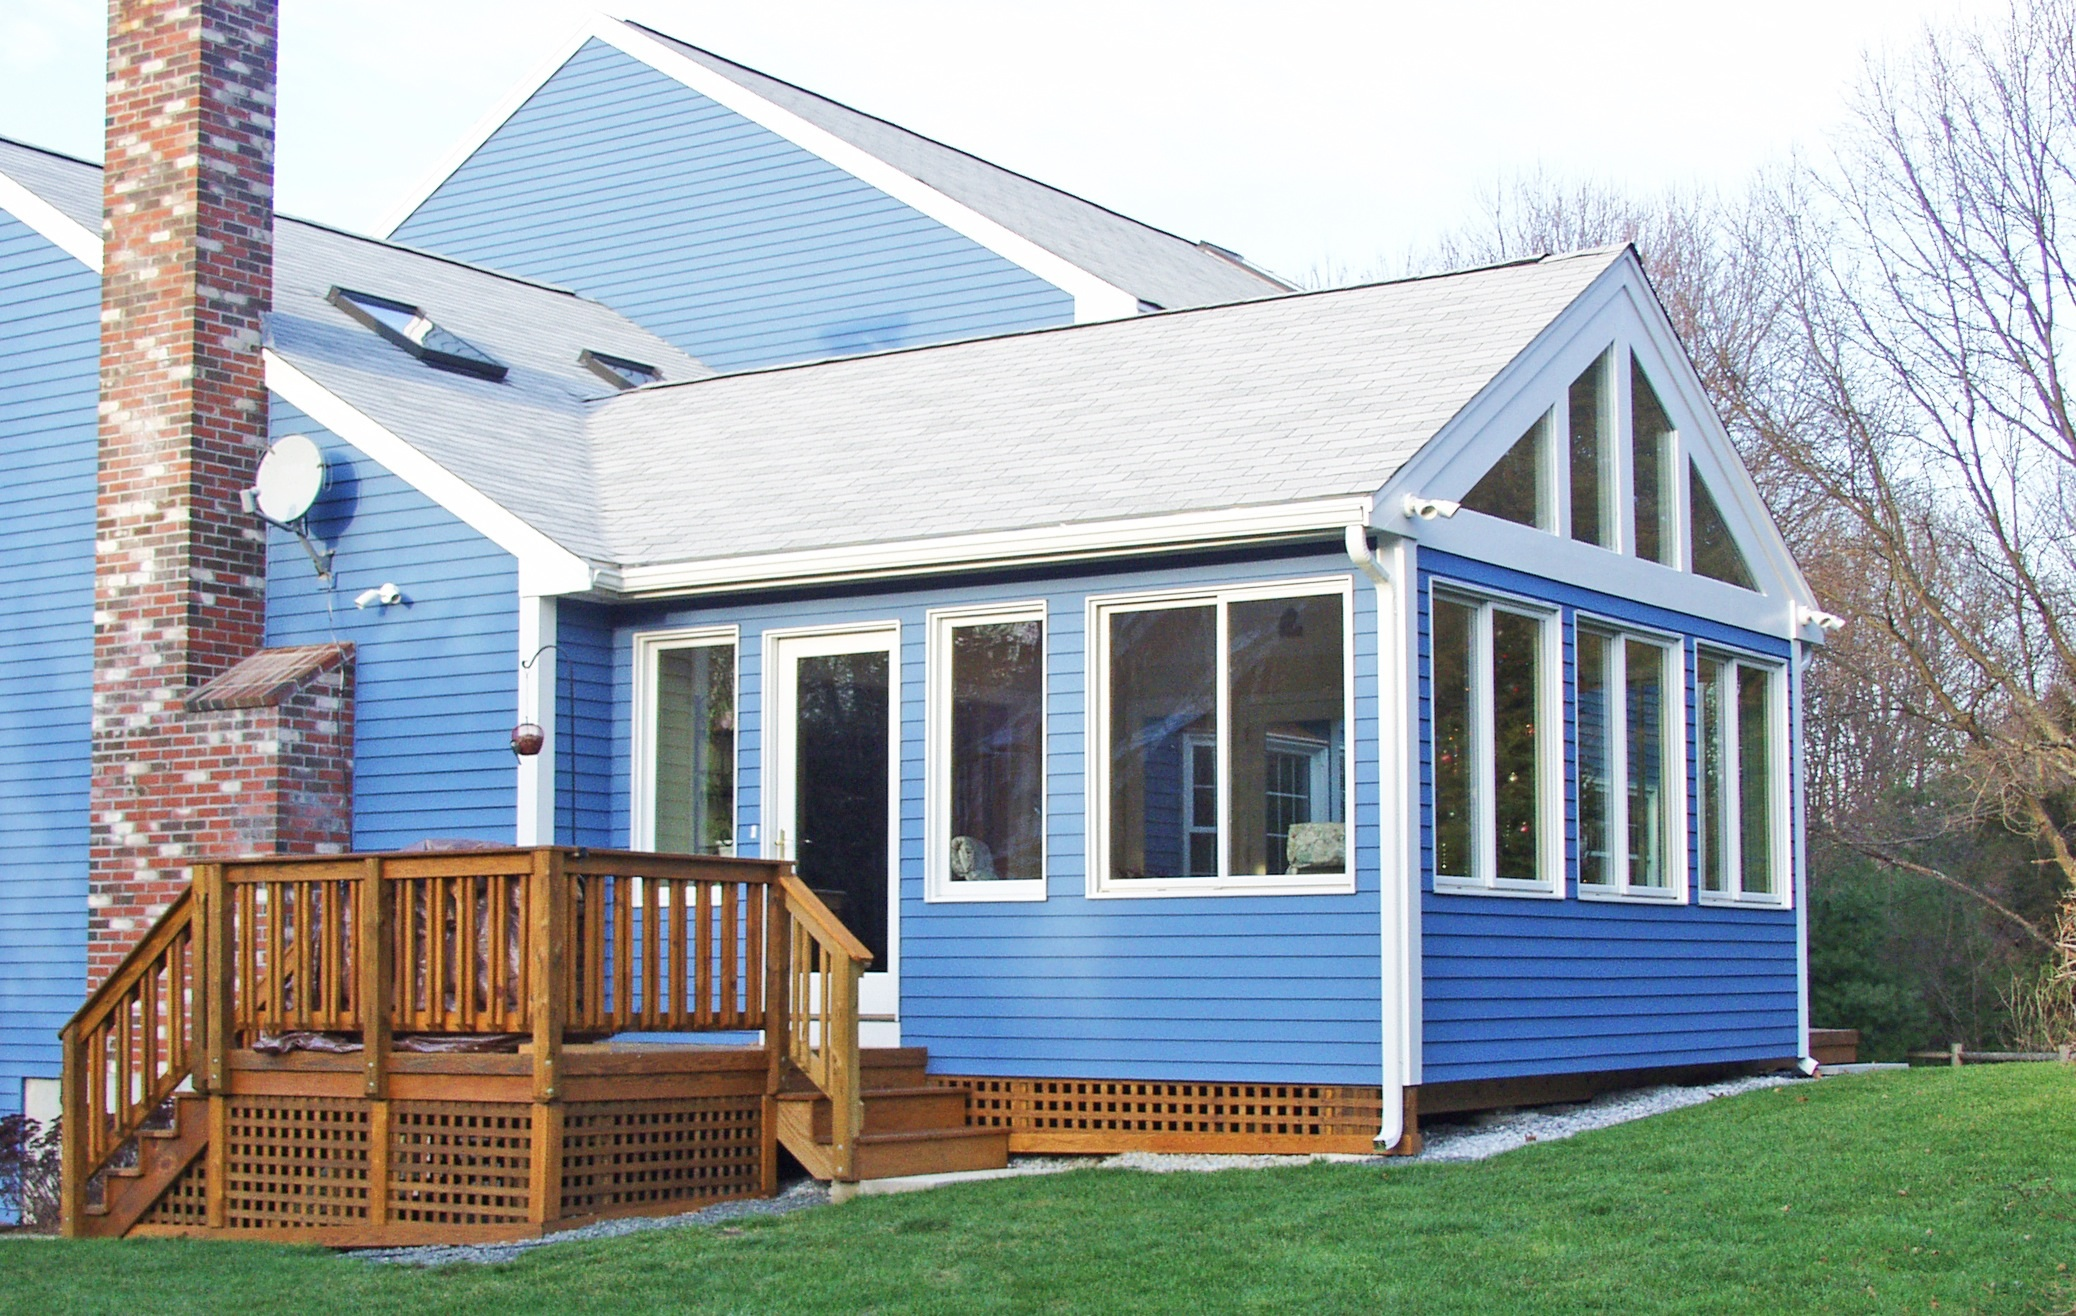 4 season sunrooms cost build your own carom sunroom bedford ma factors that determine the cost of sunroom suburban boston decks